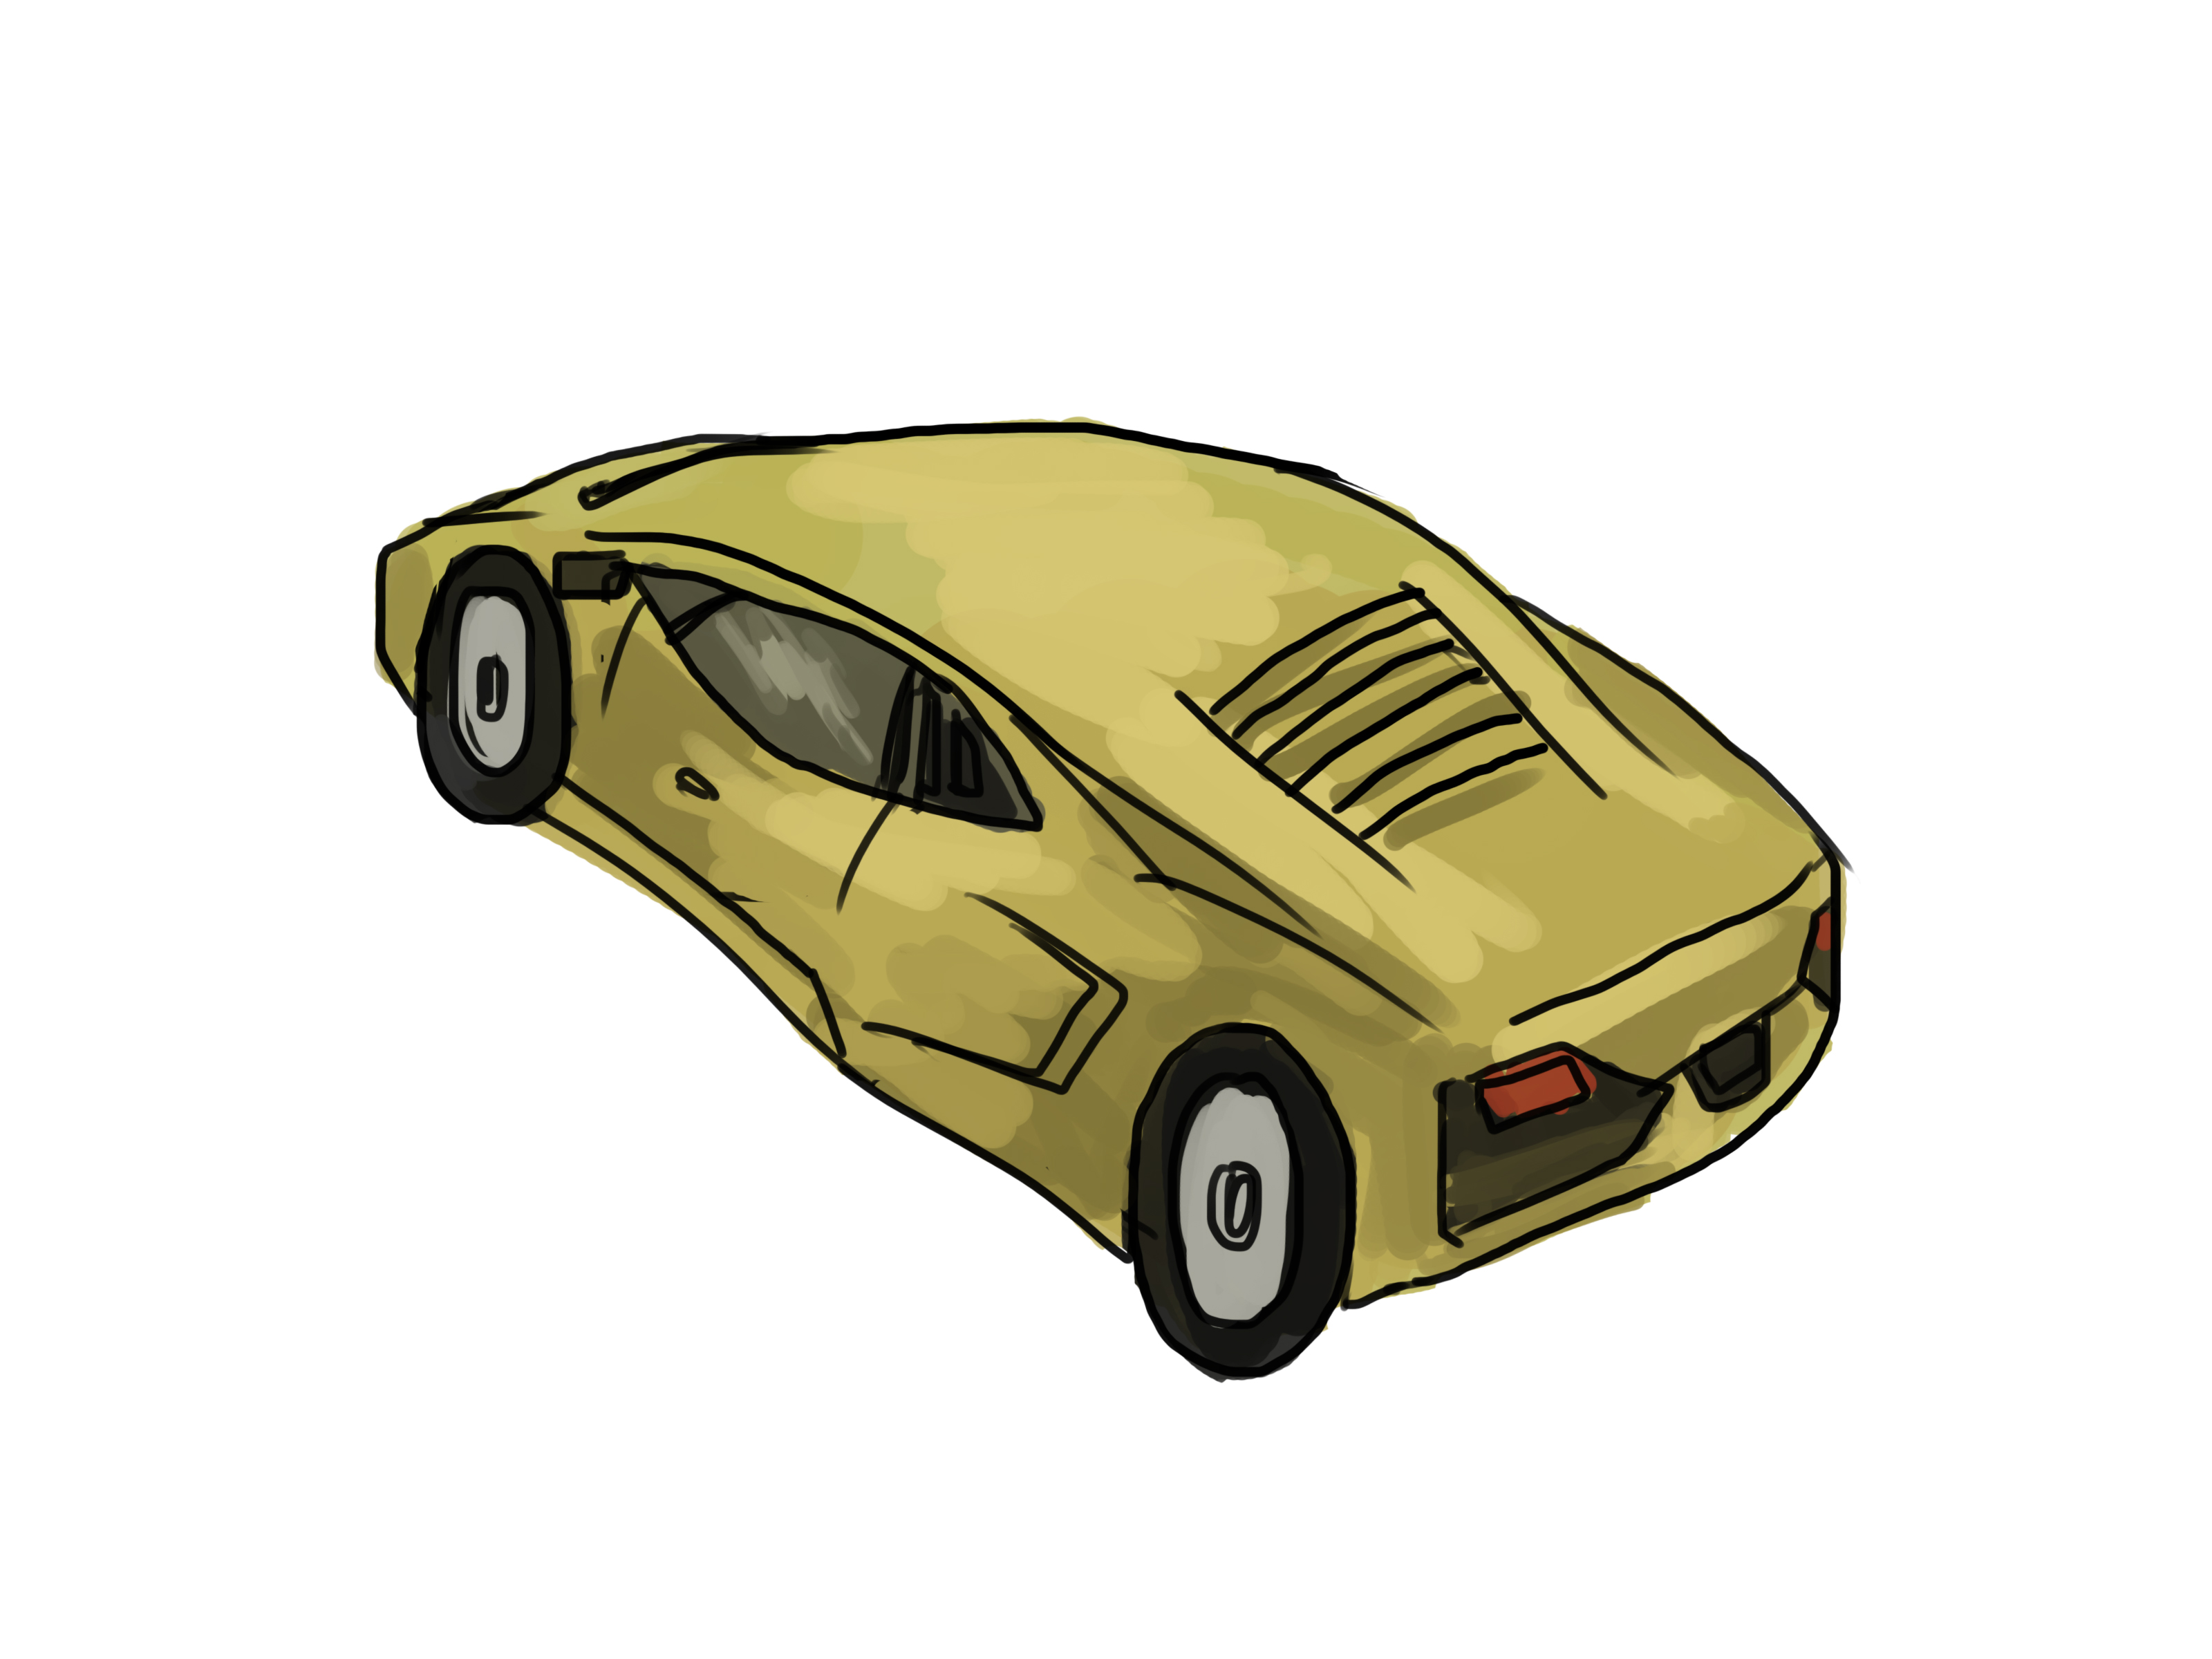 3200x2400 Ways To Draw A Lamborghini